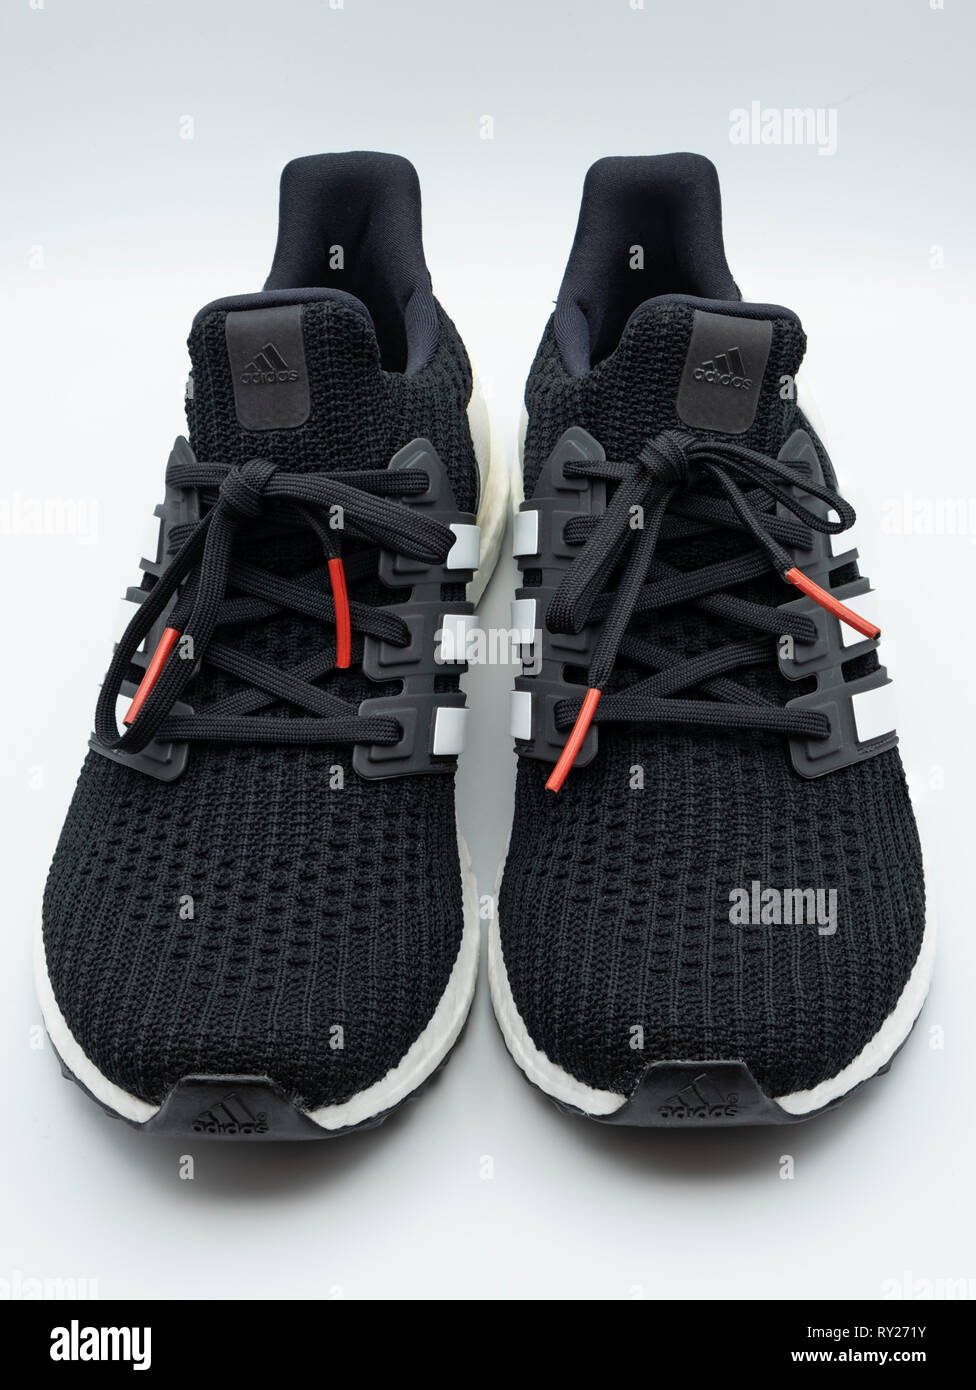 Adidas Ultraboost running shoes - Stock Image